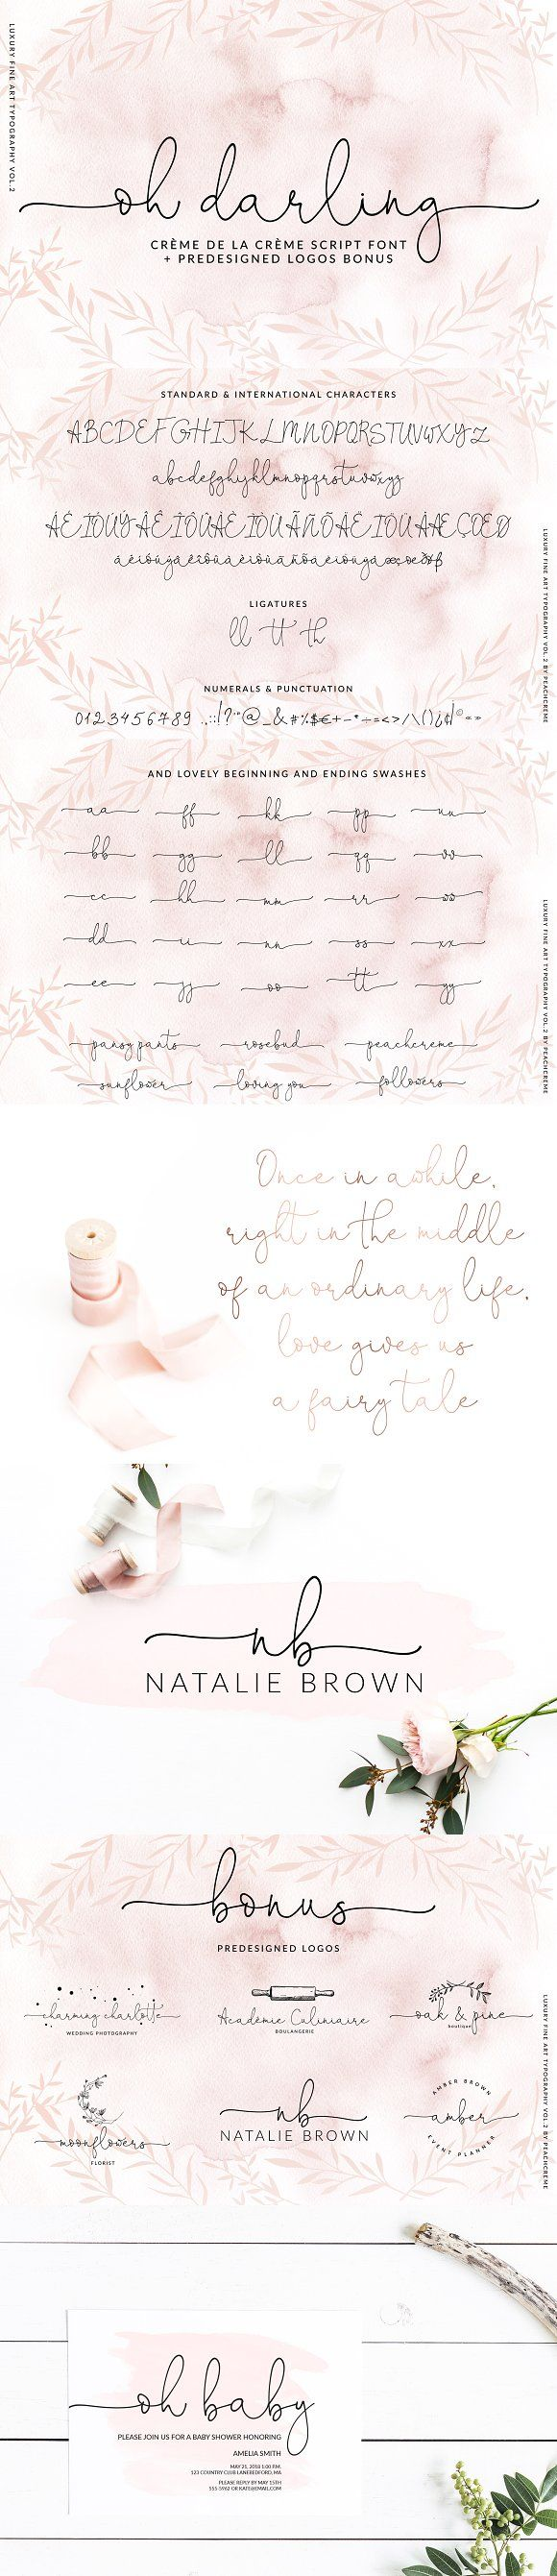 Oh Darling- Ethereal Script Font by PeachCreme on @creativemarket